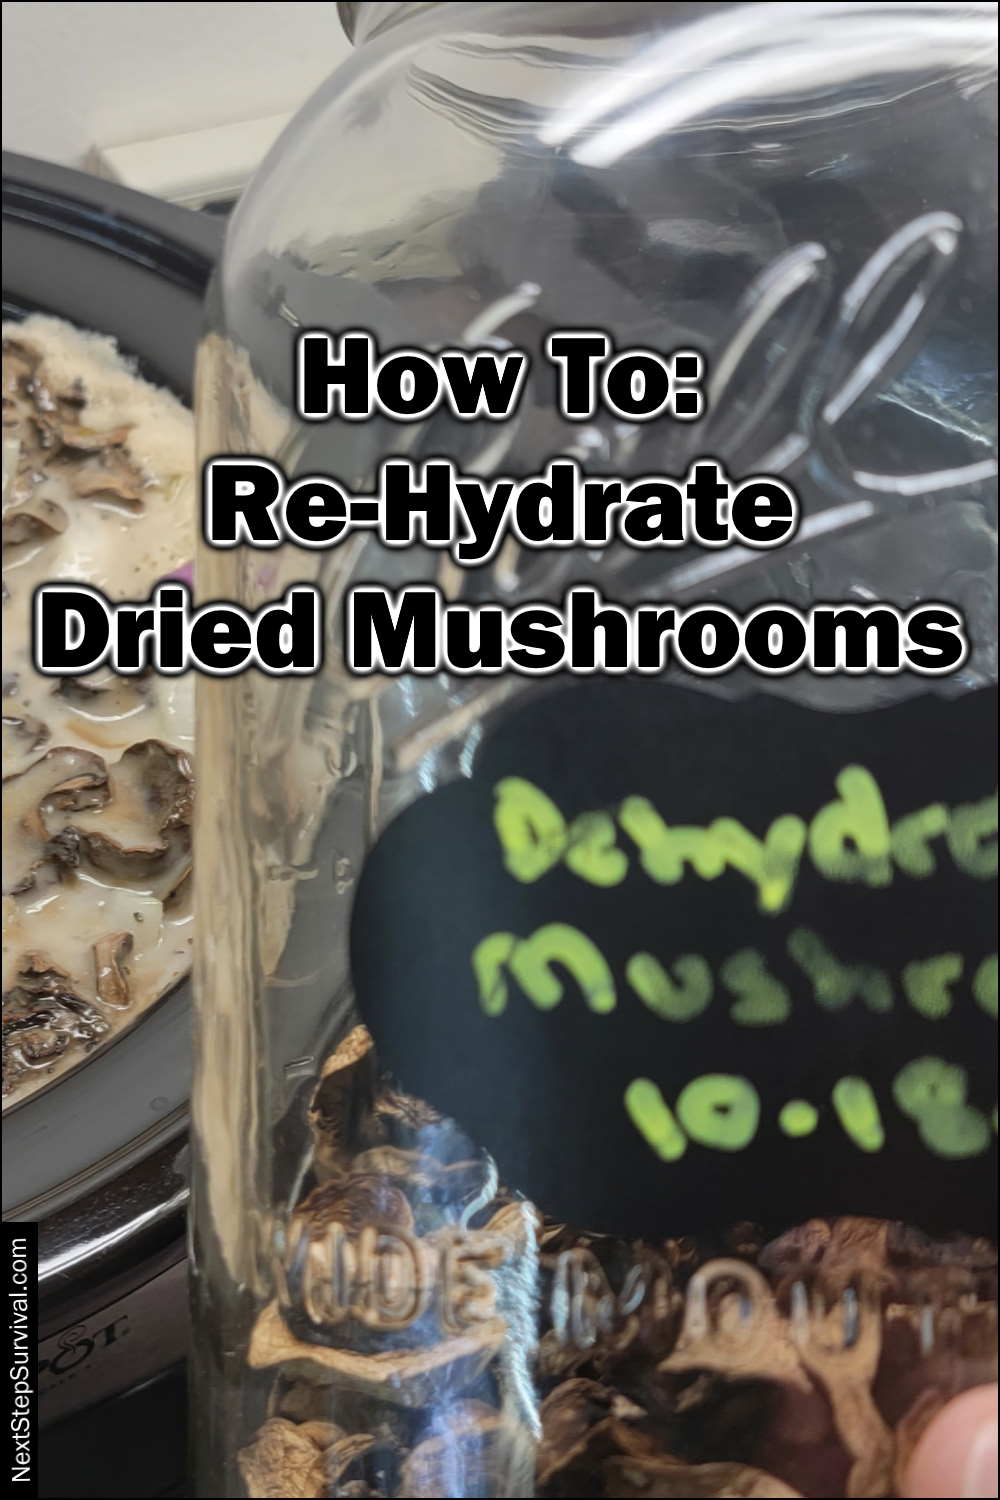 Pinterest Image - How To Re-Hydrate Dried Mushrooms